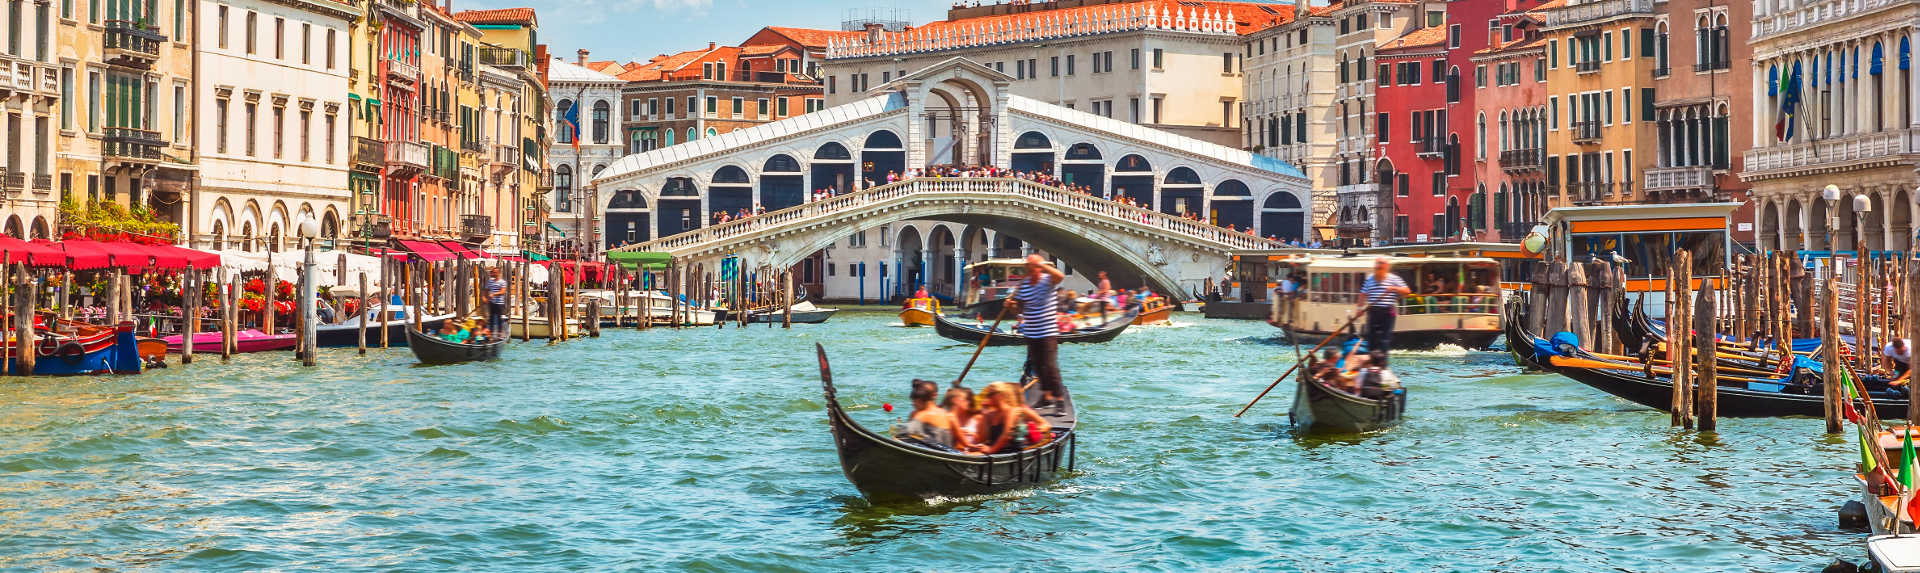 How much is a gondola ride in Venice?